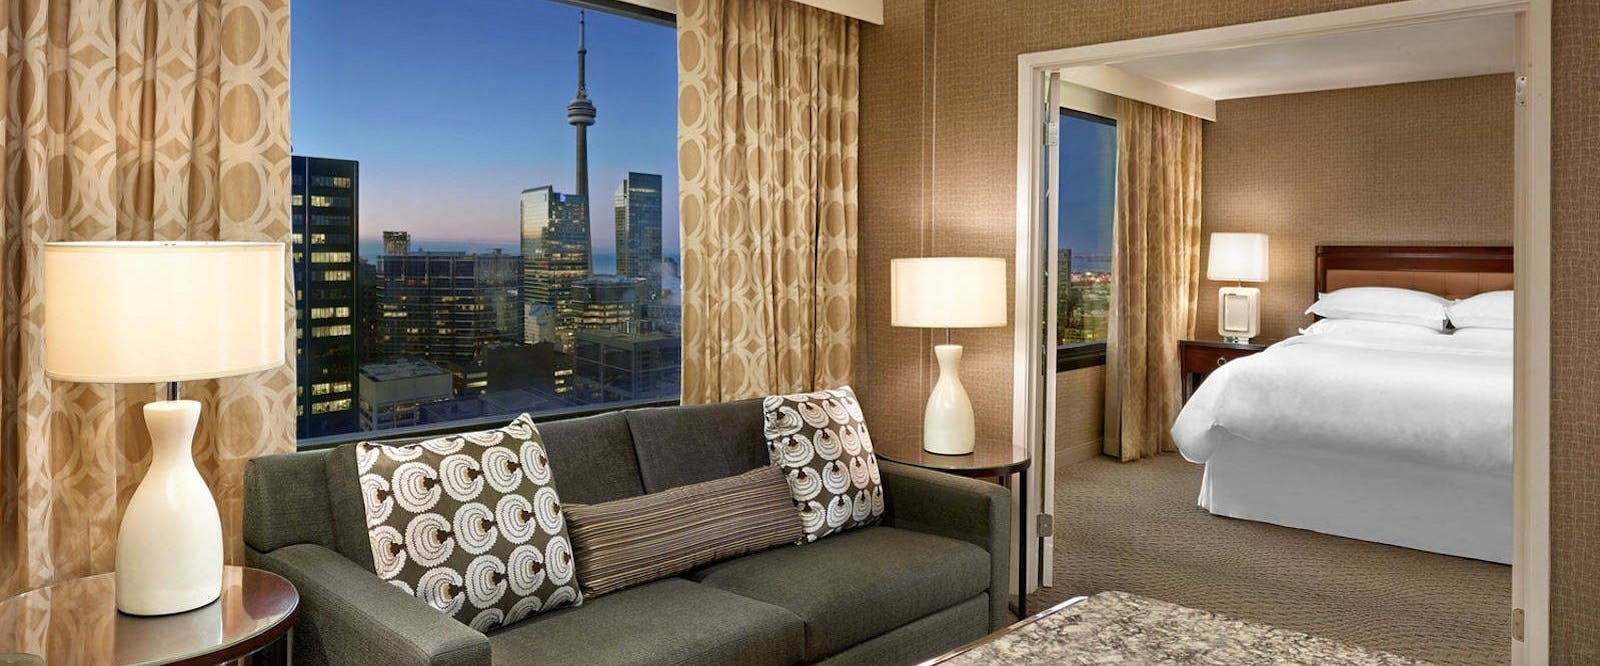 Deluxe Self Contained Suite At Sheraton Centre Toronto Hotel